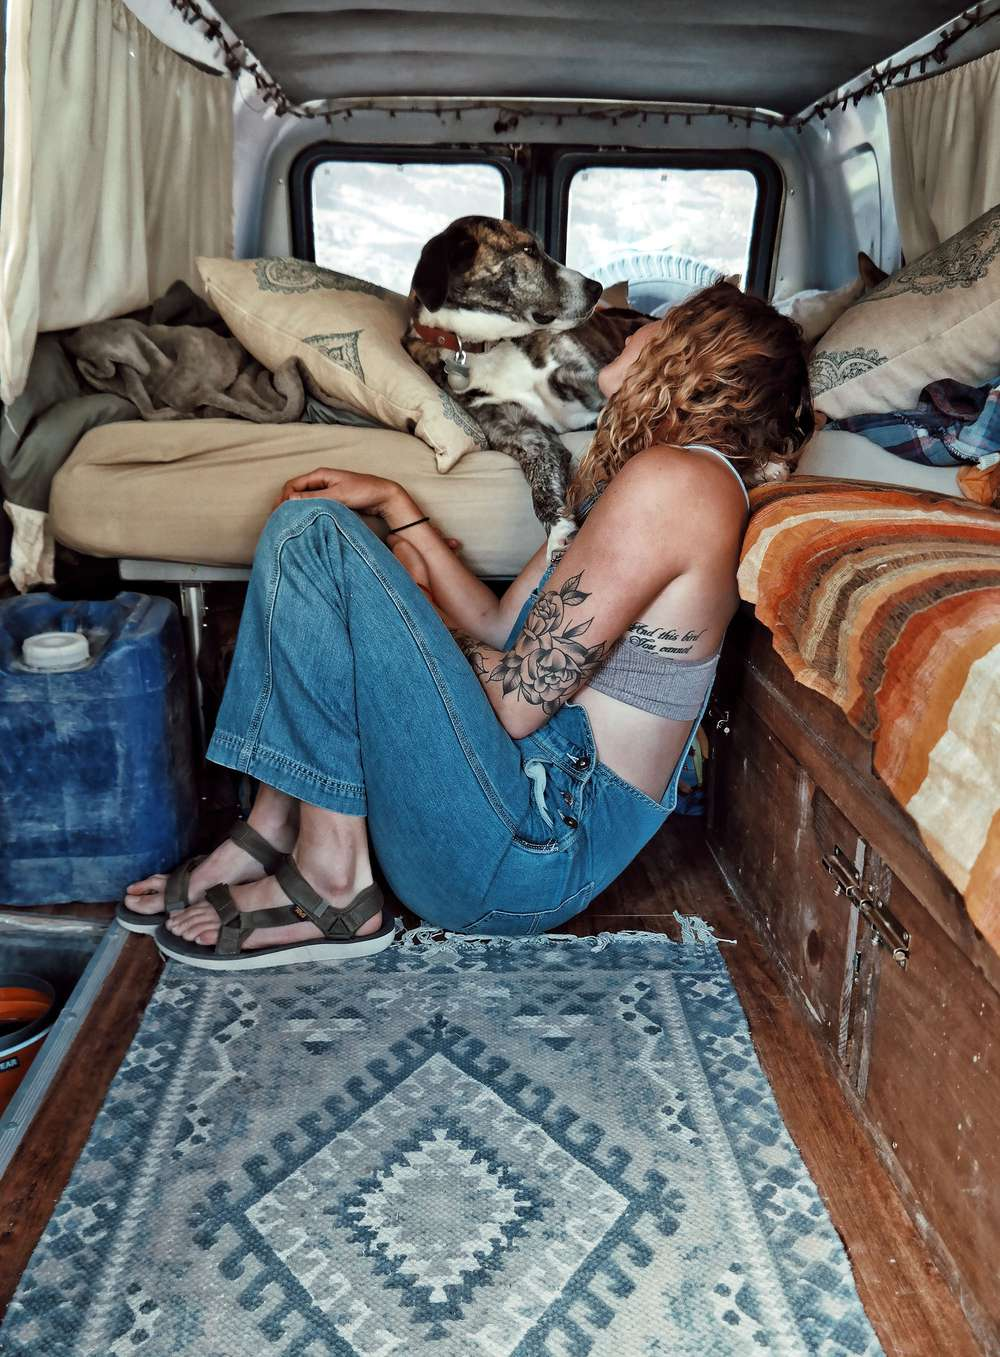 Brianna Madia looking at dog while sitting on floor of van wearing overalls